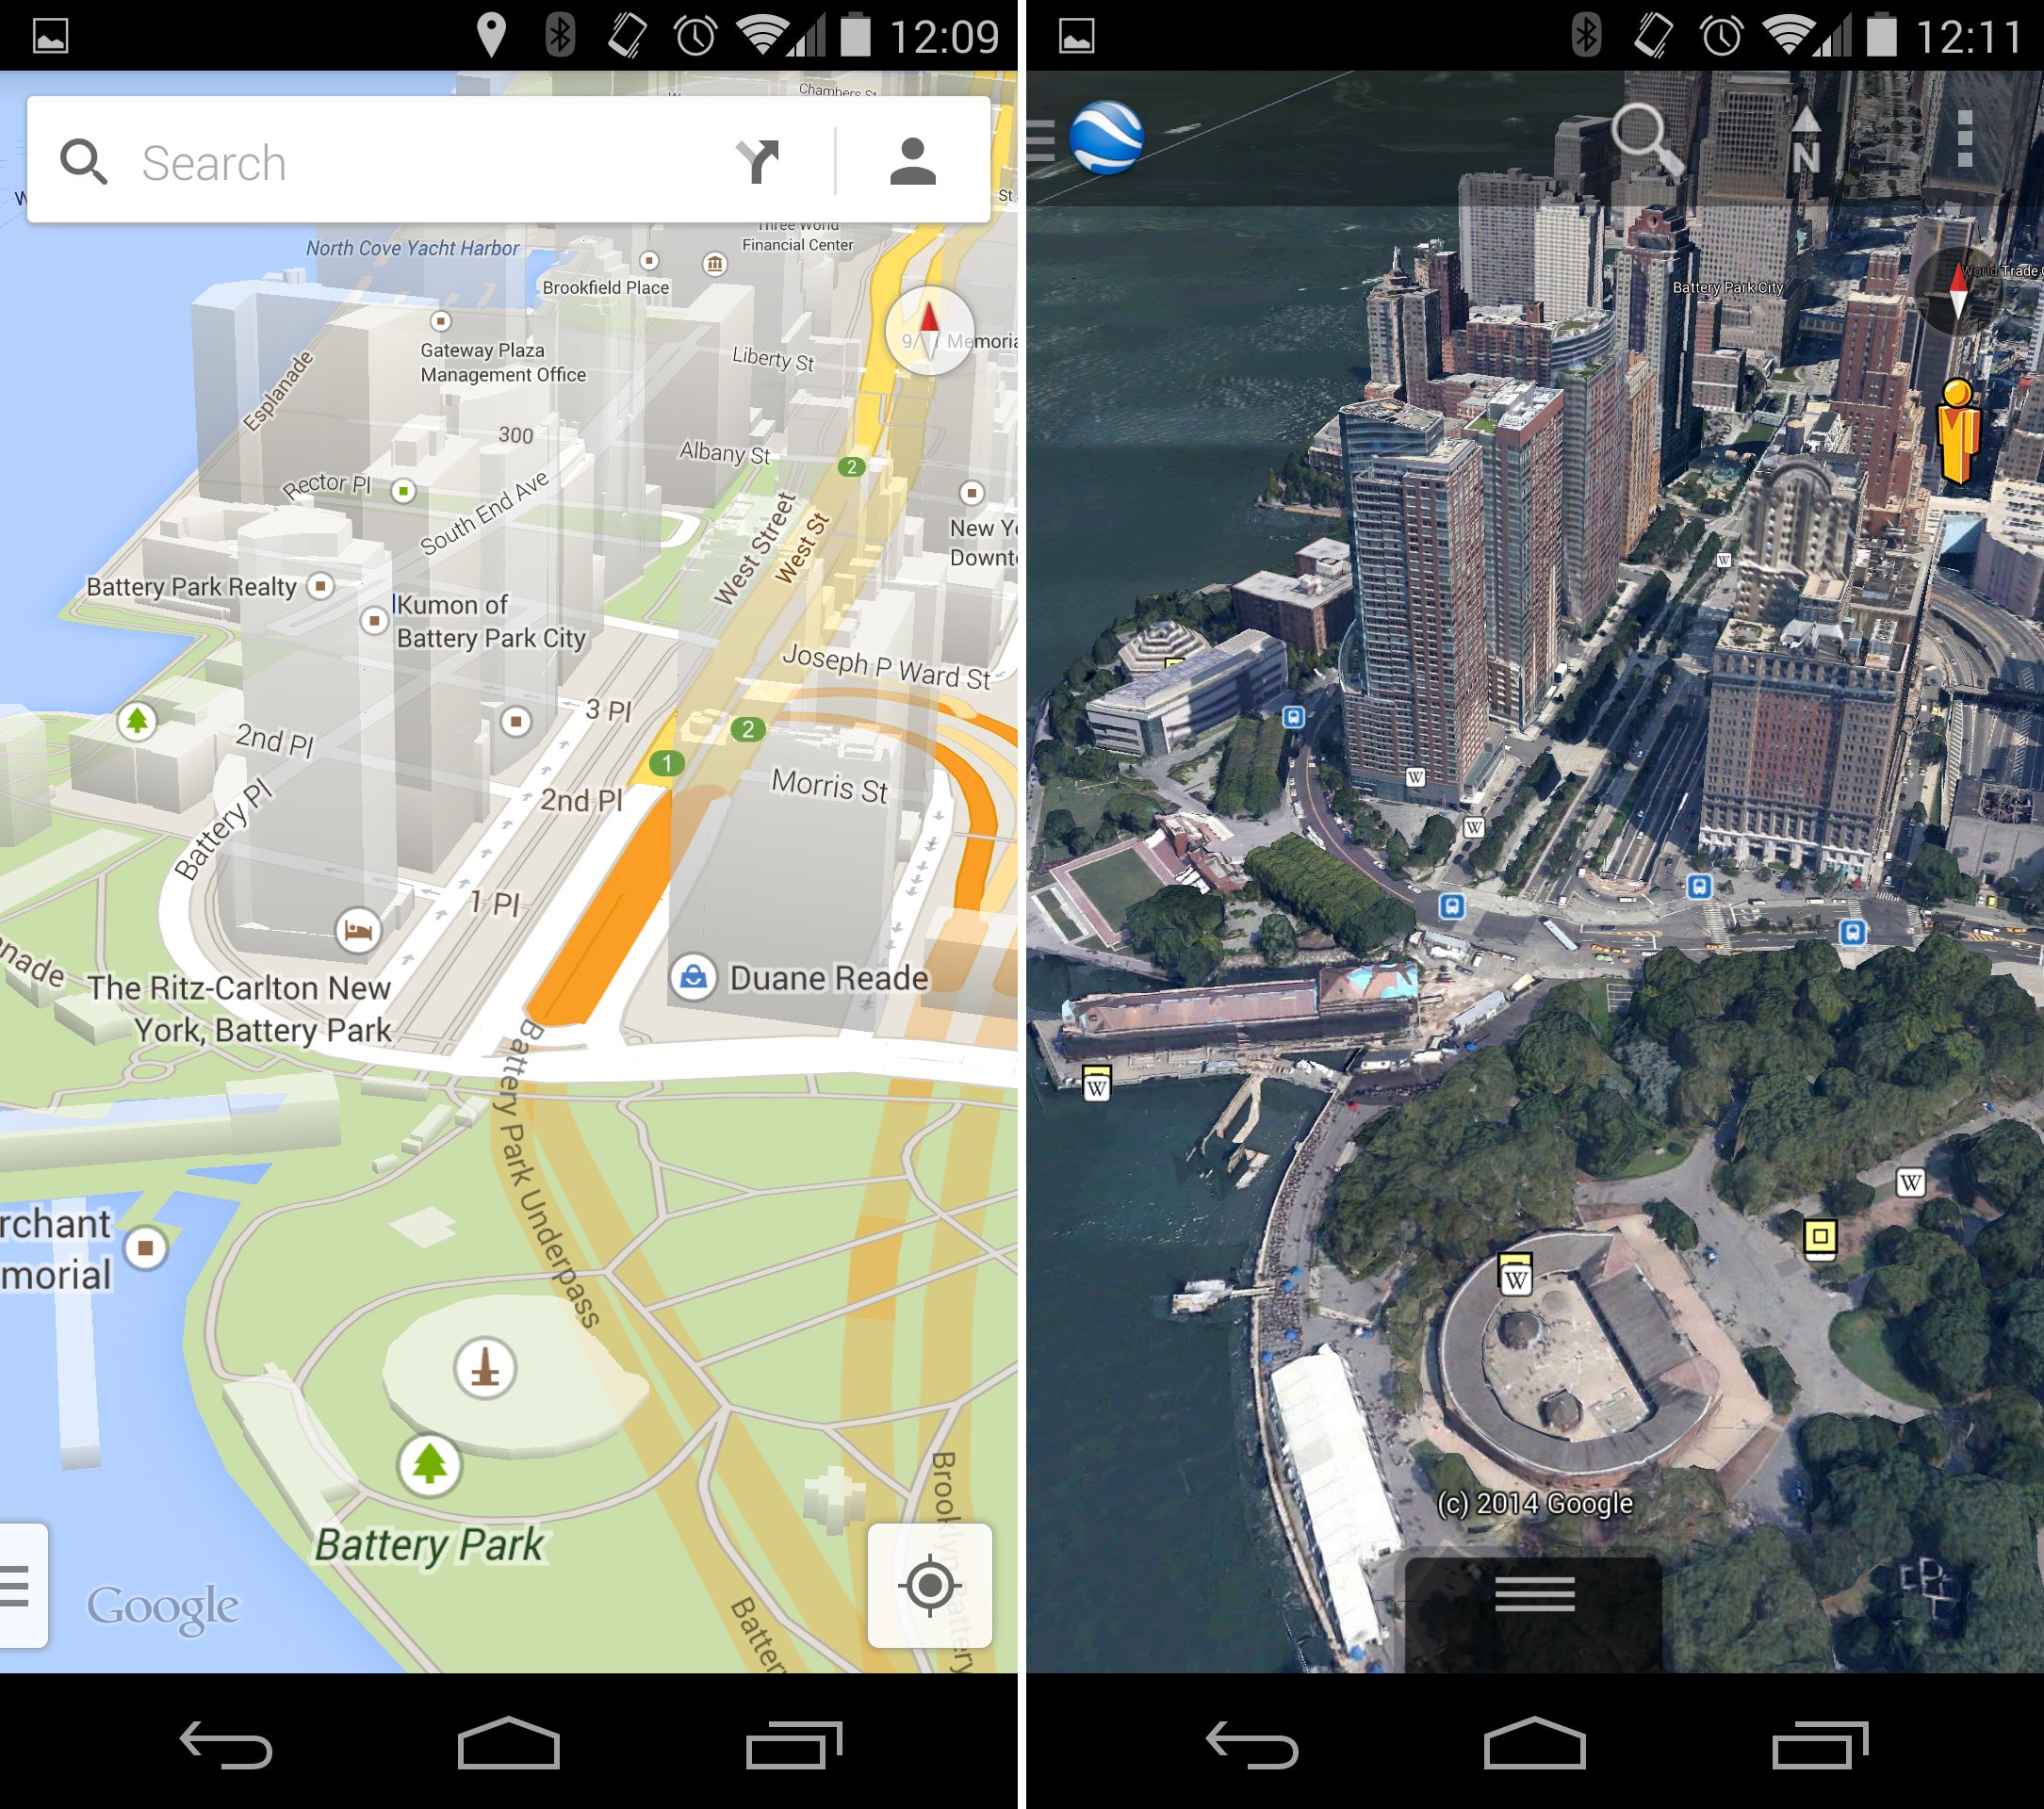 The Android Google Maps and Google Earth clients.